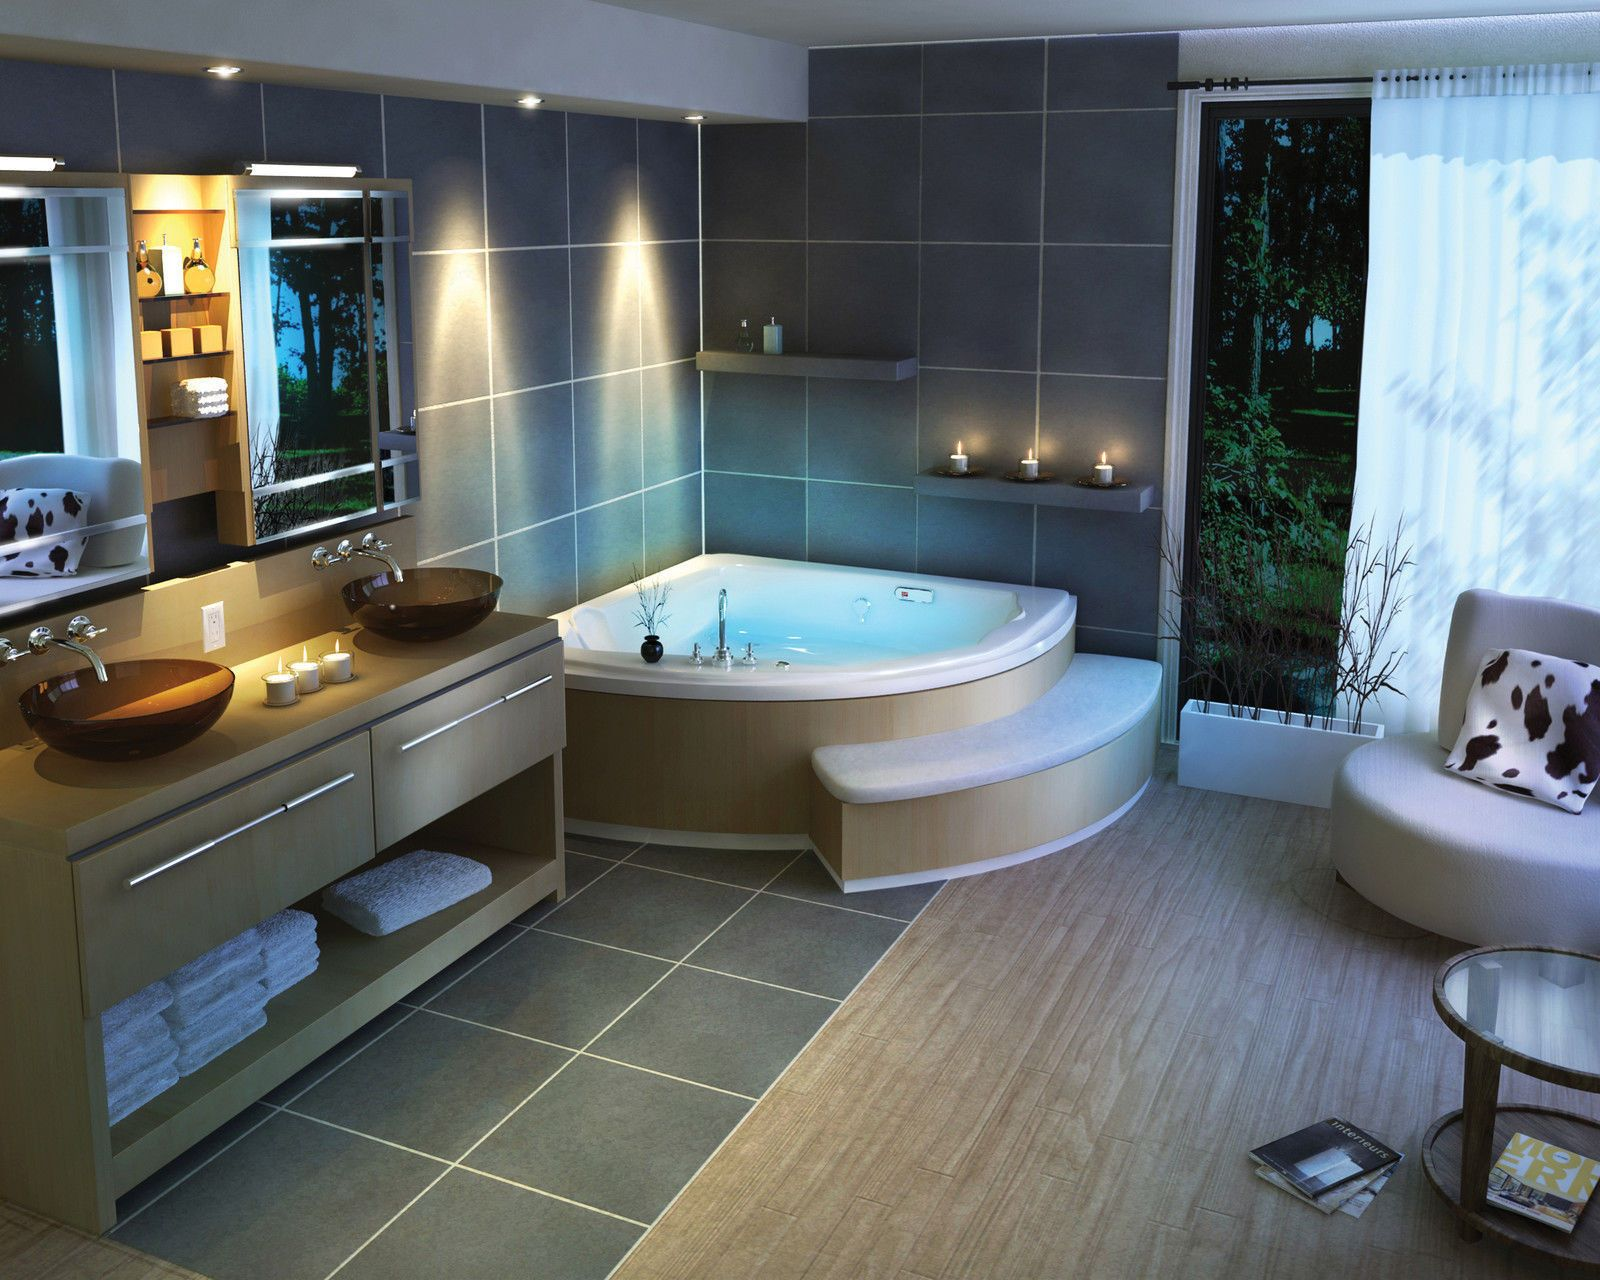 Dreaming Of A Relaxing Luxurious Bathroom Add In A Luxe Whirlpool Bath And You Re One Step Closer Whirl Bathroom Sink Design Bathroom Design Small Bathroom